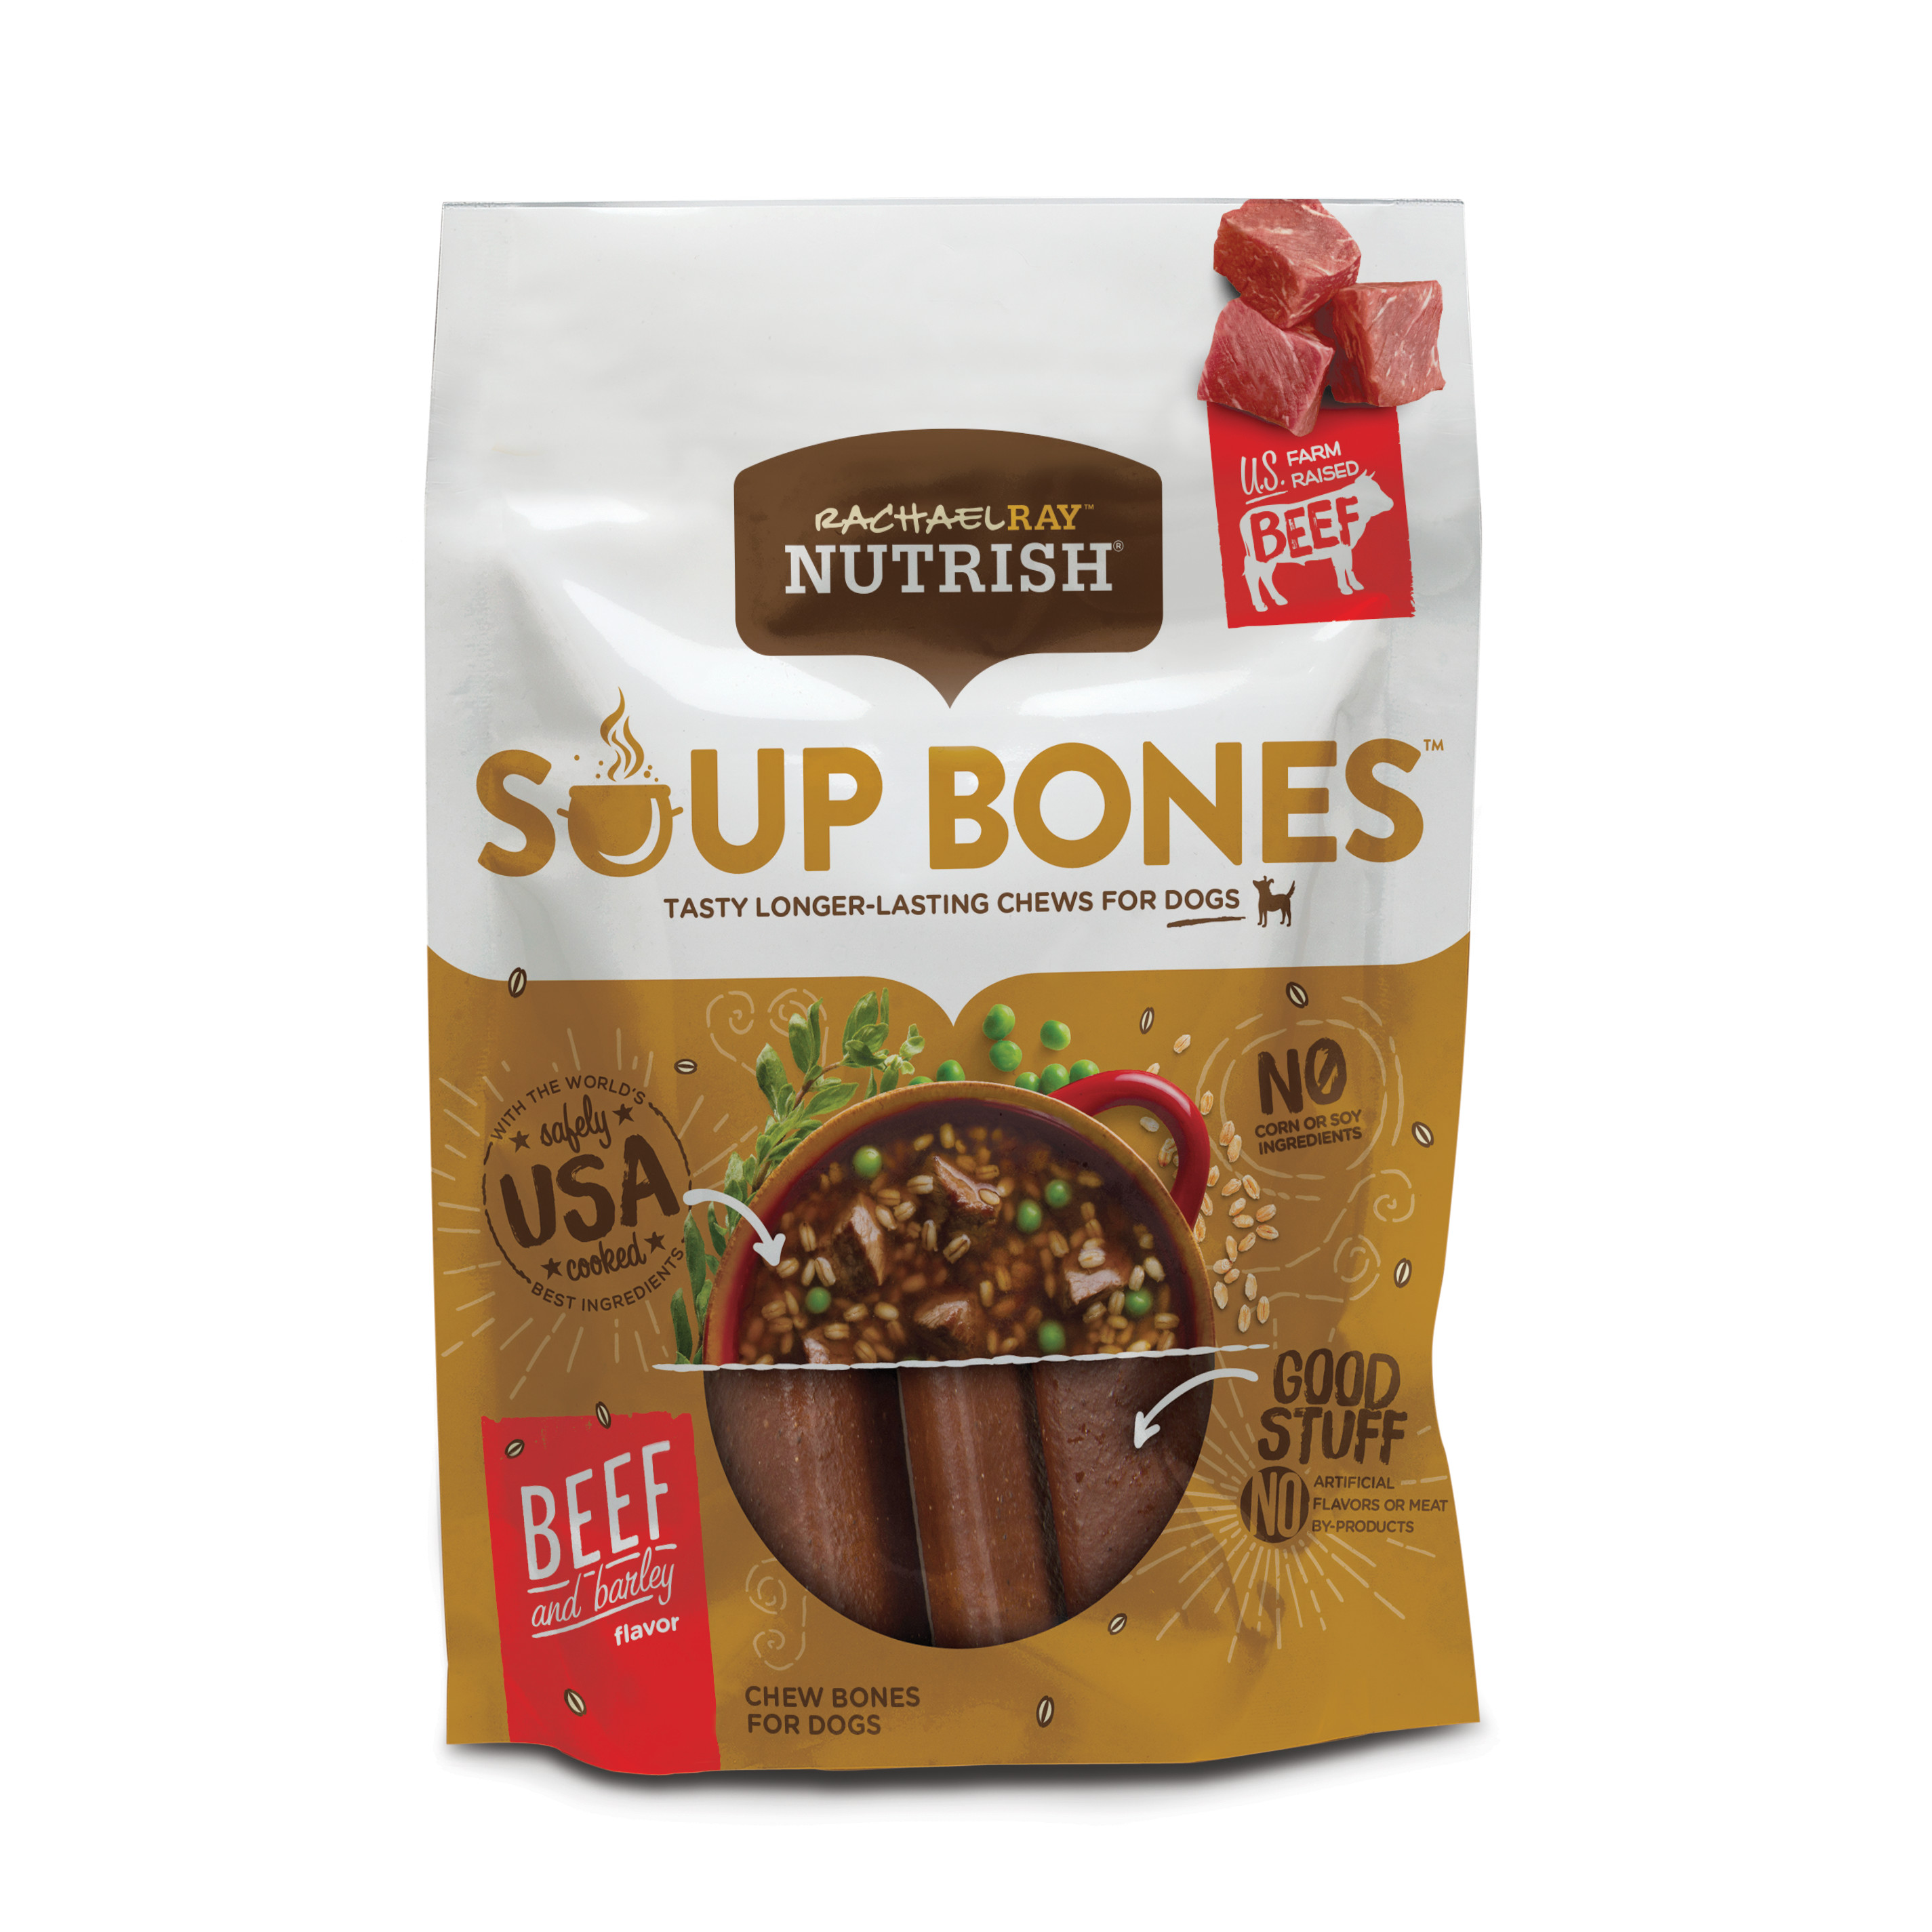 Rachael Ray Nutrish Soup Bones Dog Treats, Beef & Barley Flavor, 6 count